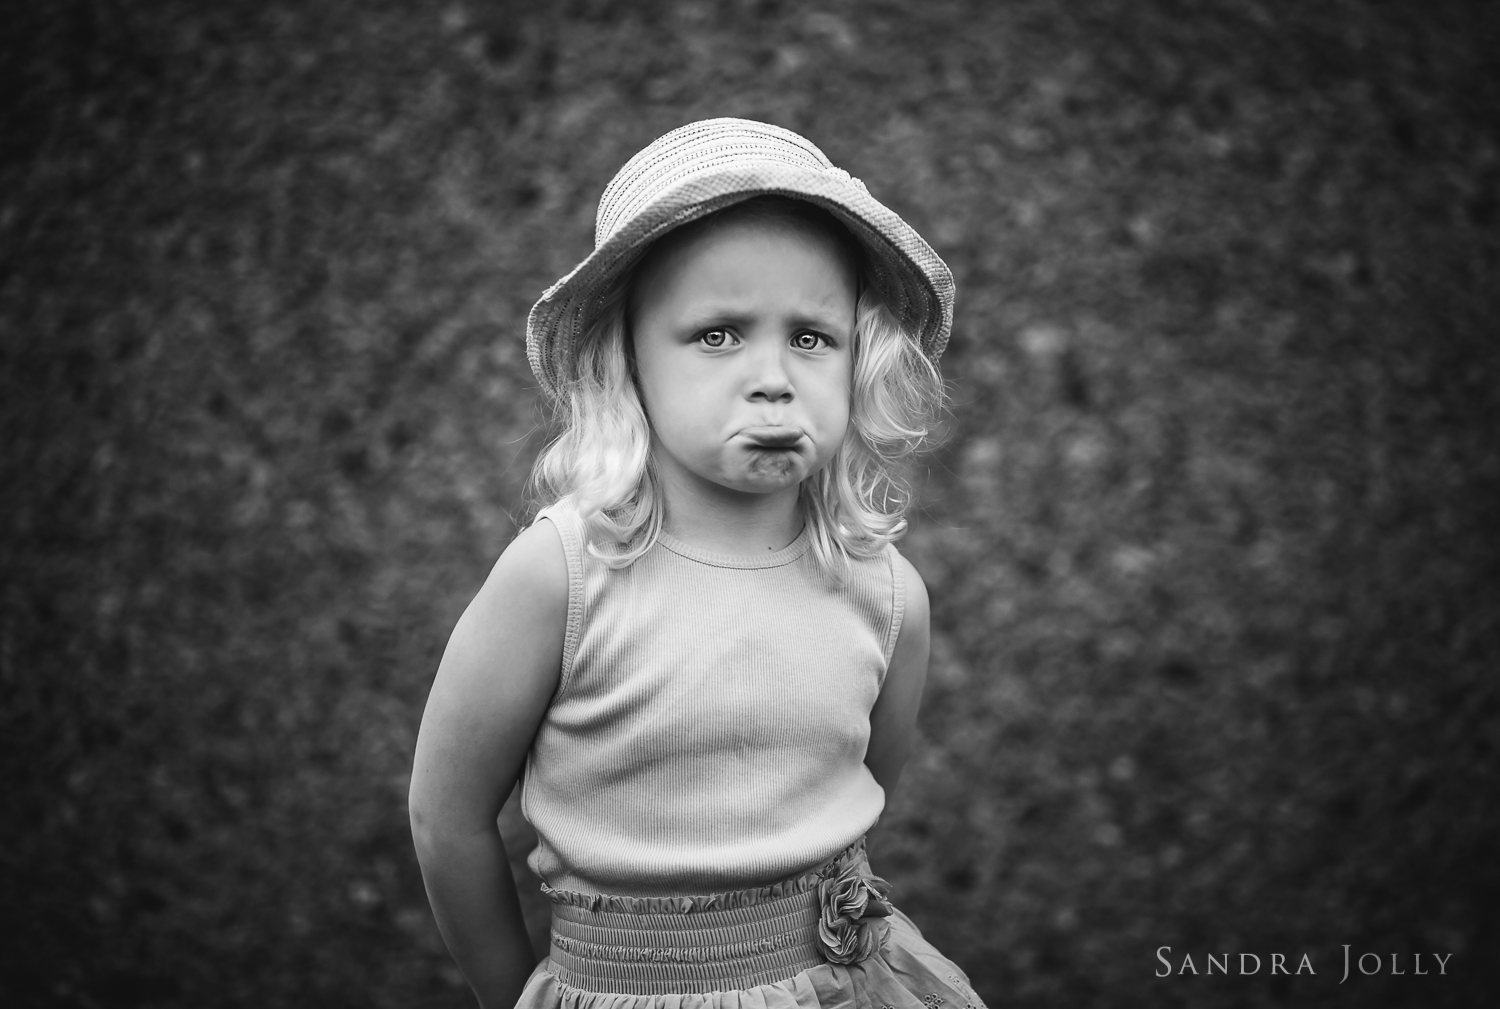 I don't want to go home for dinner_sandra jolly photography